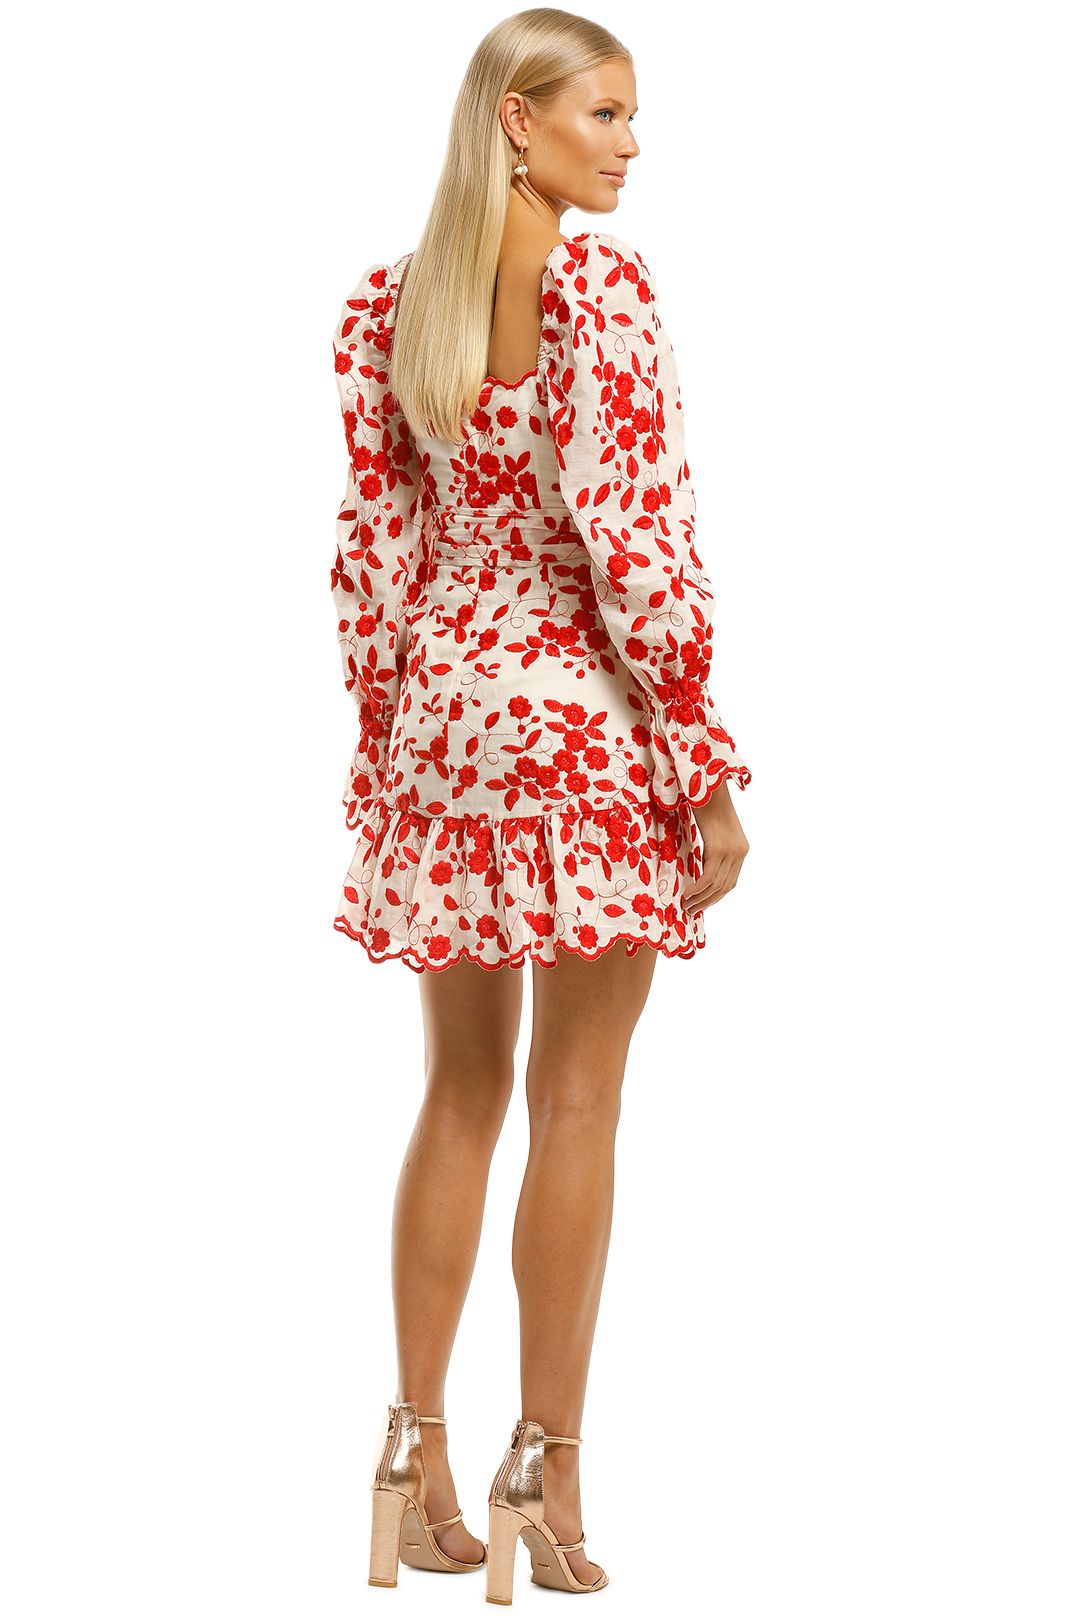 Talulah-Endless-Love-Mini-Dress-Floral-Embroidery-Back